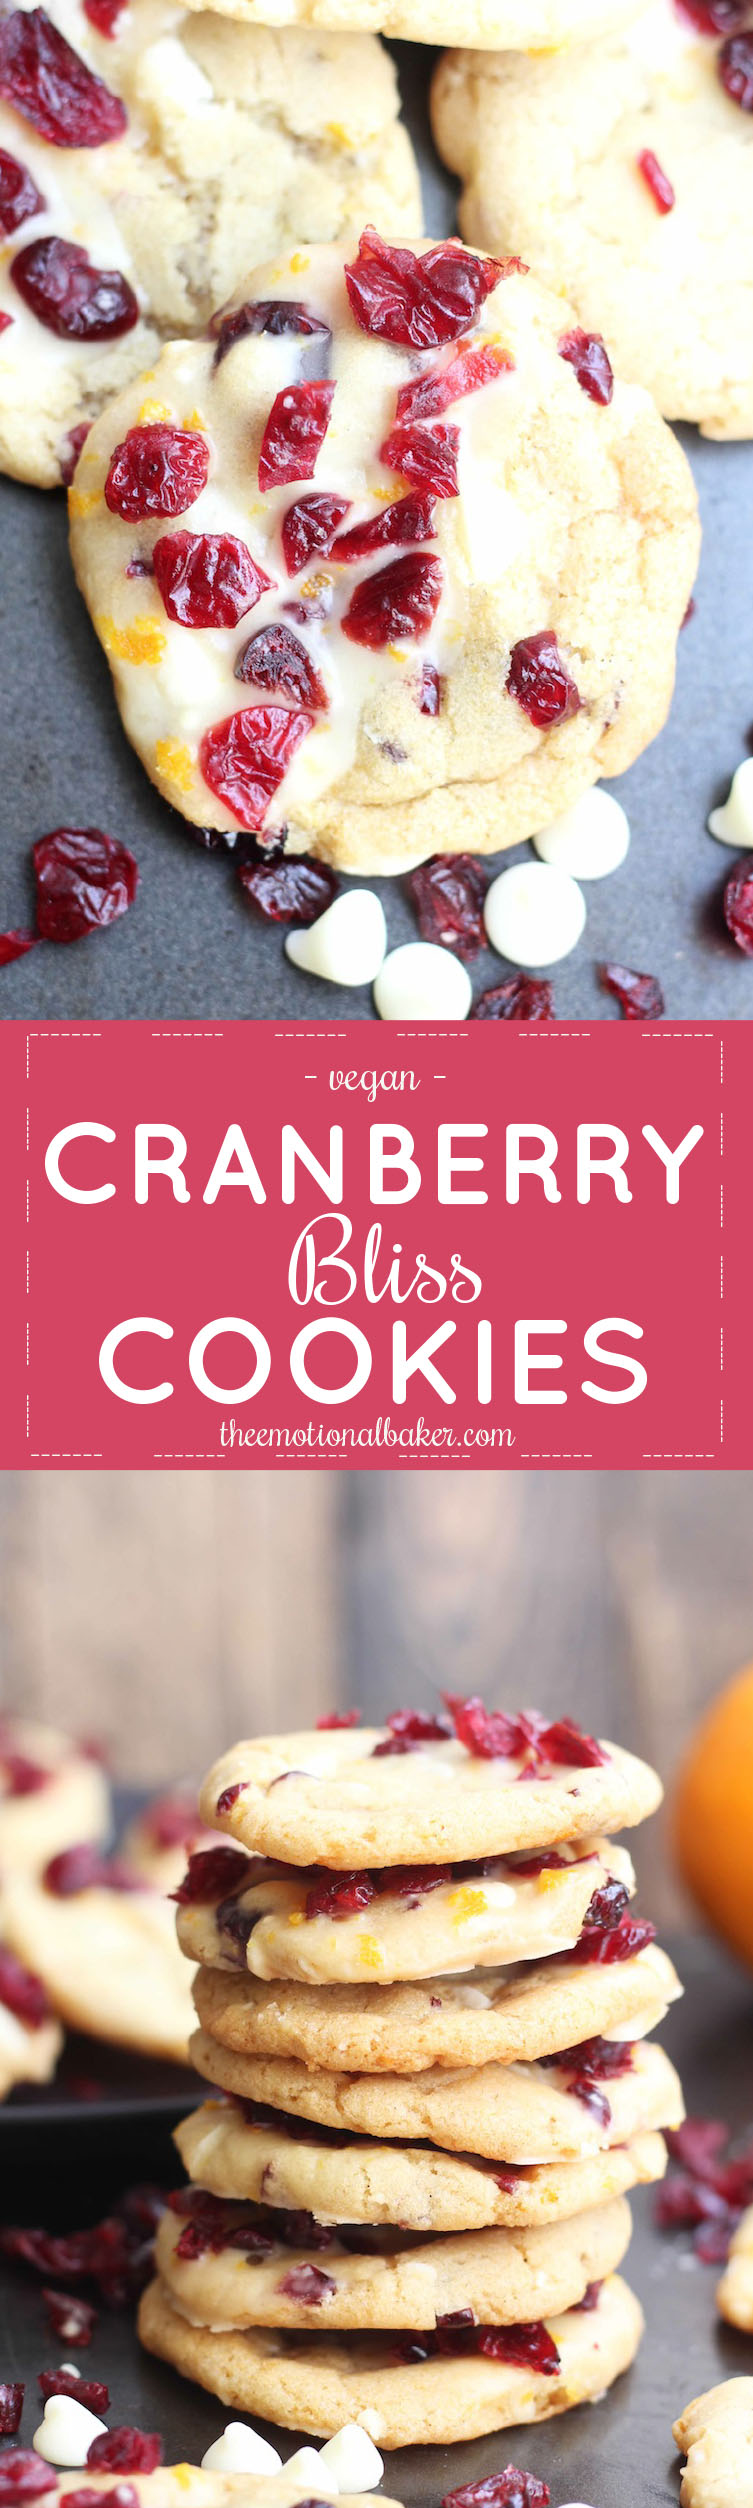 These Cranberry Bliss Cookies are inspired by the popular holiday bar. They are packed with cranberries, white chocolate, citrus and a touch of ginger.